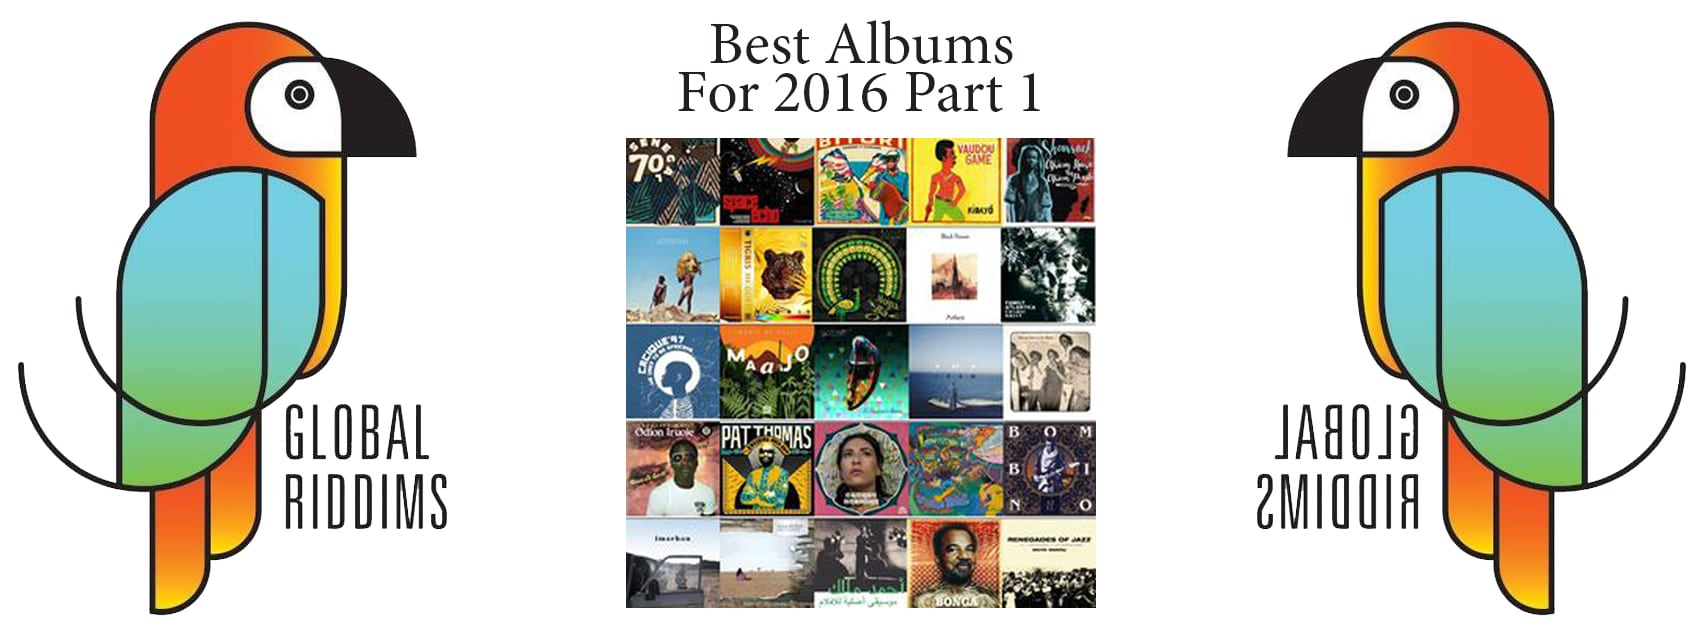 Global Riddims - Best Albums of 2016 Part 1 1